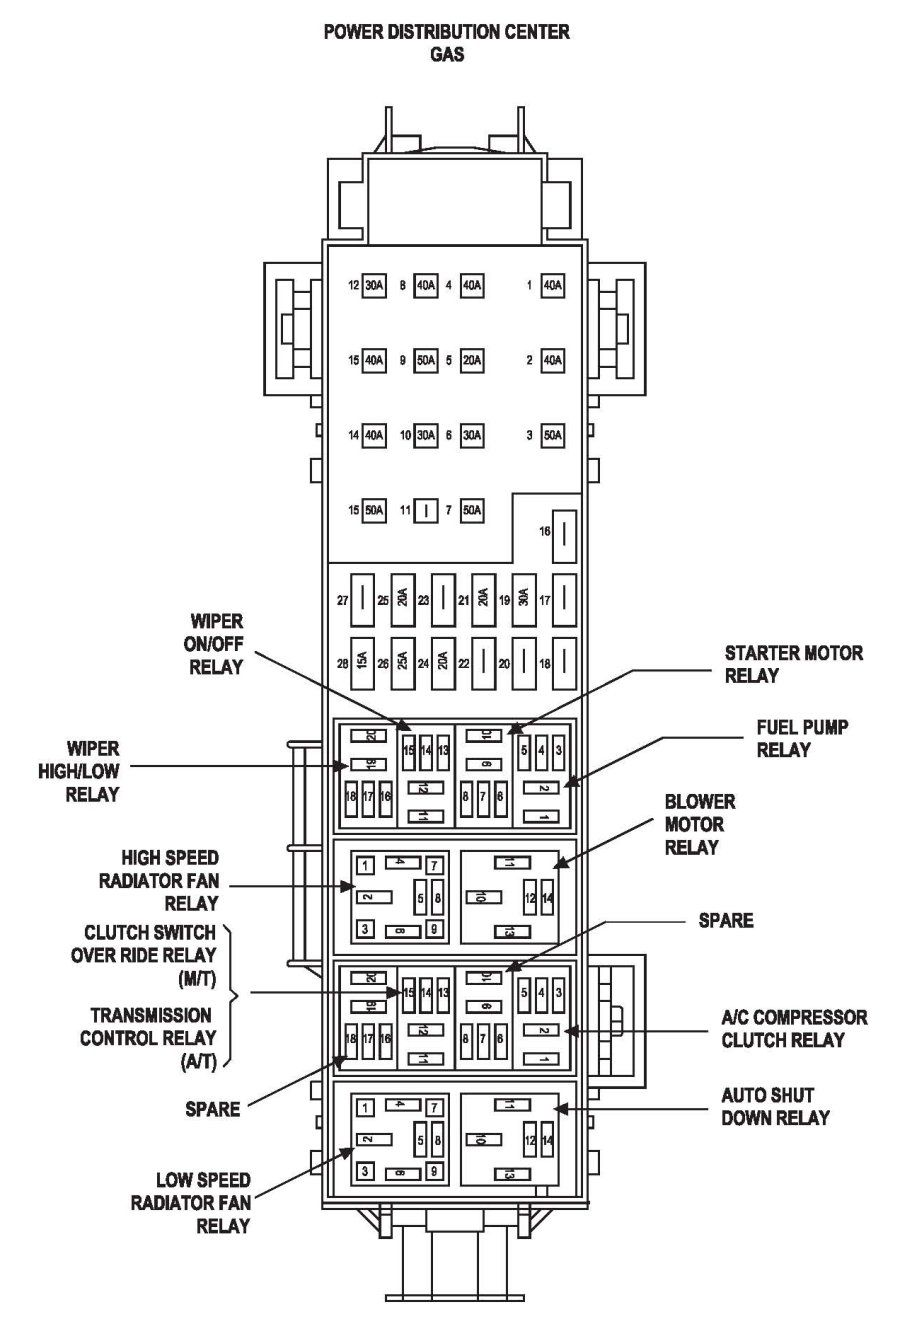 b3536c3739783eb19f827744cc42c3c4 jeep liberty fuse box diagram image details jeep liberty 2007 jeep liberty fuse box diagram at soozxer.org